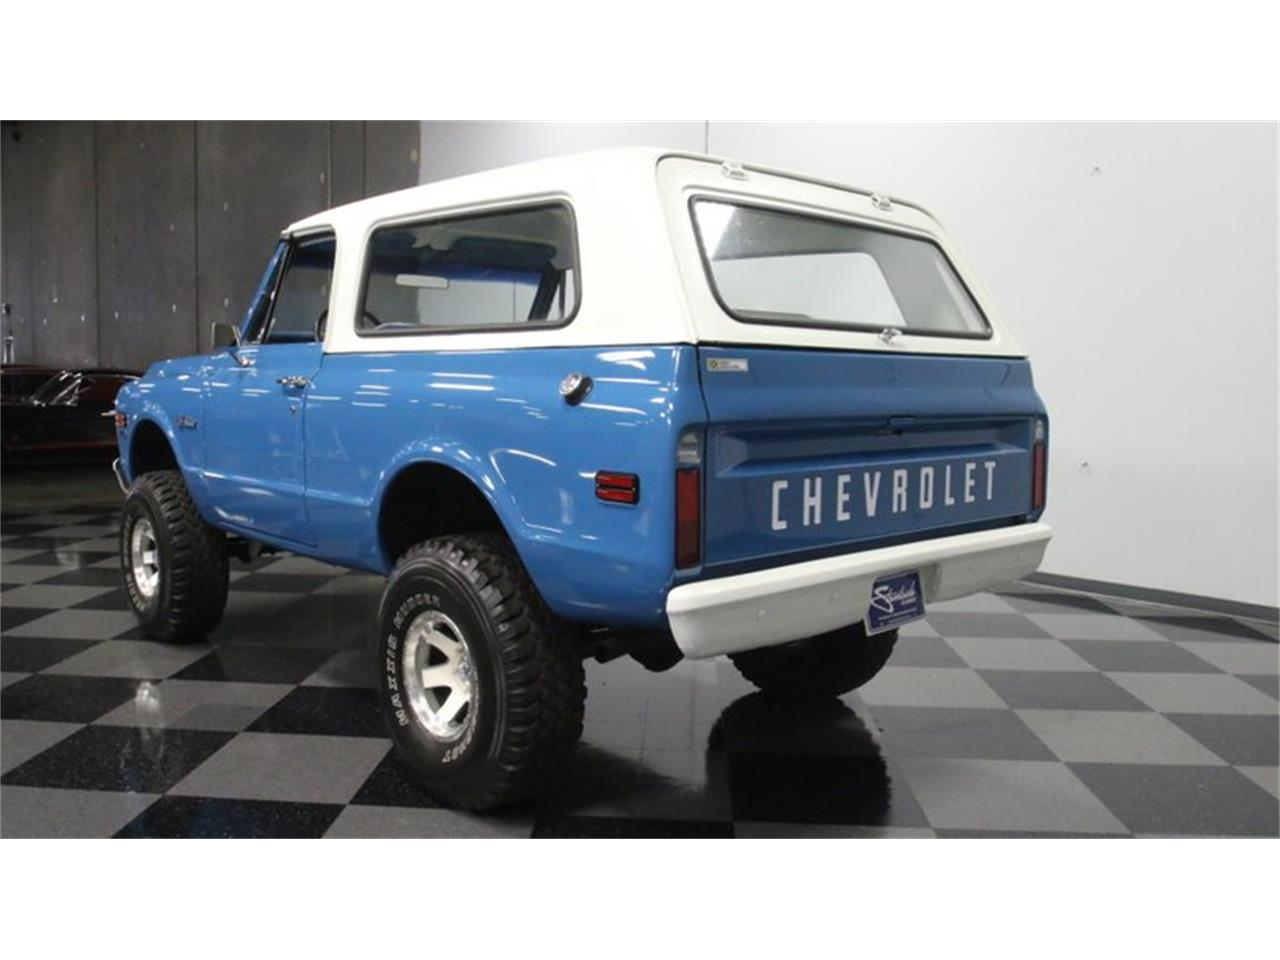 Large Picture of 1971 Chevrolet Blazer located in Georgia - $52,995.00 Offered by Streetside Classics - Atlanta - PZLZ